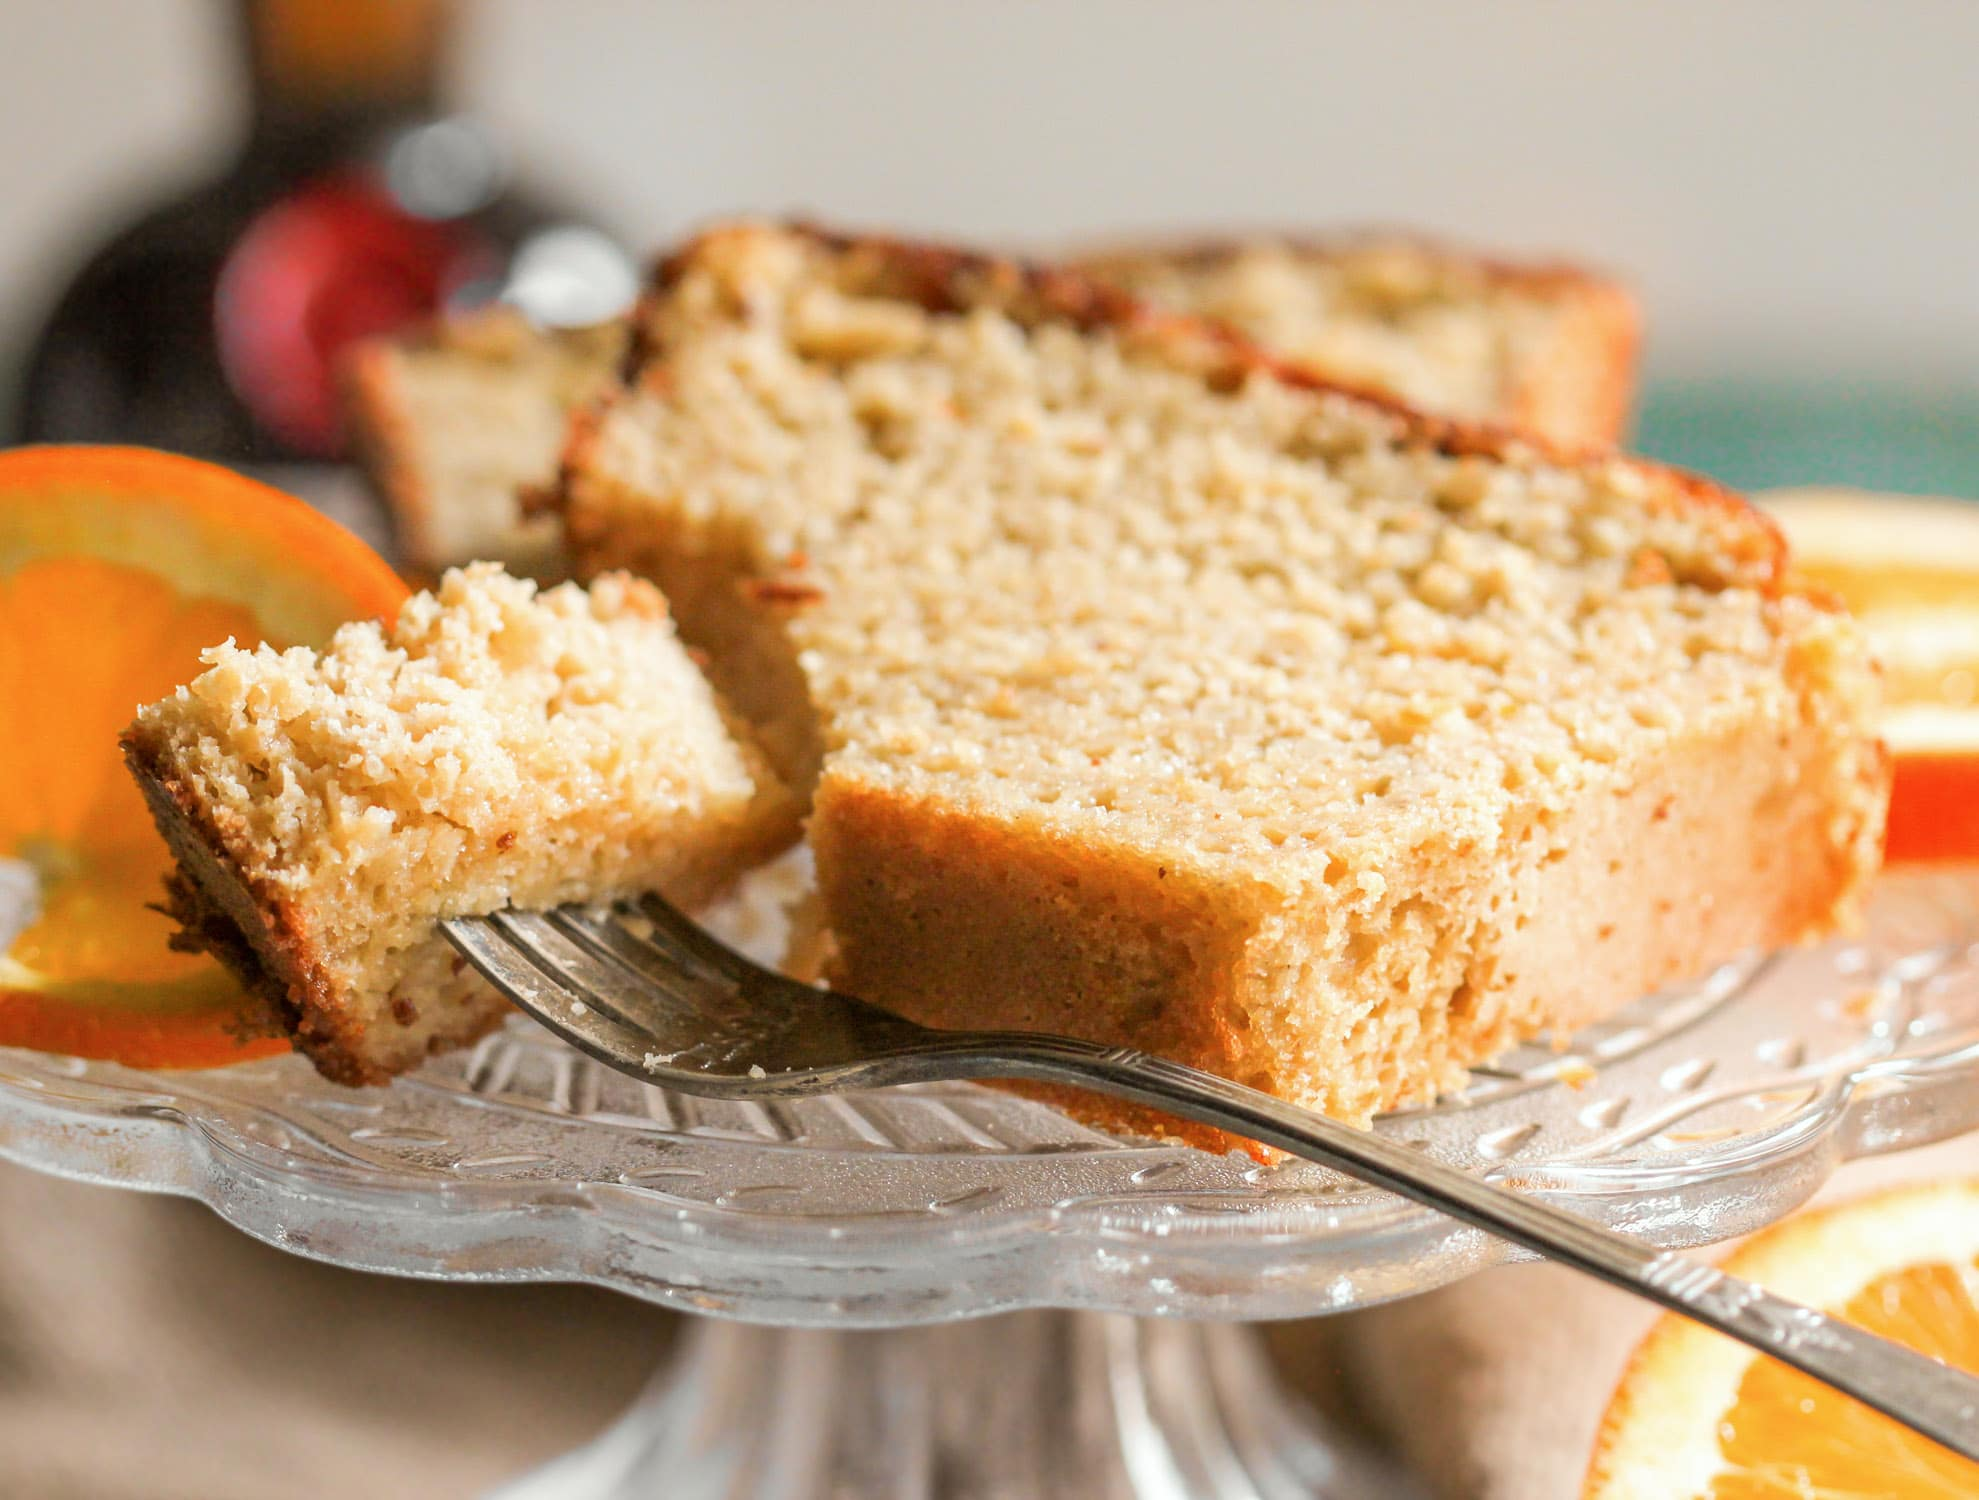 This Healthy BOOZY Orange Pound Cake is sweet, buttery, and full of refreshing orange flavor. You'd never know it's low sugar, high protein, and whole grain, and you'd DEFINITELY never guess that it's made without butter! Healthy Dessert Recipes with sugar free, low calorie, low fat, low carb, high protein, gluten free, dairy free, vegan, and raw options at the Desserts With Benefits Blog (www.DessertsWithBenefits.com)